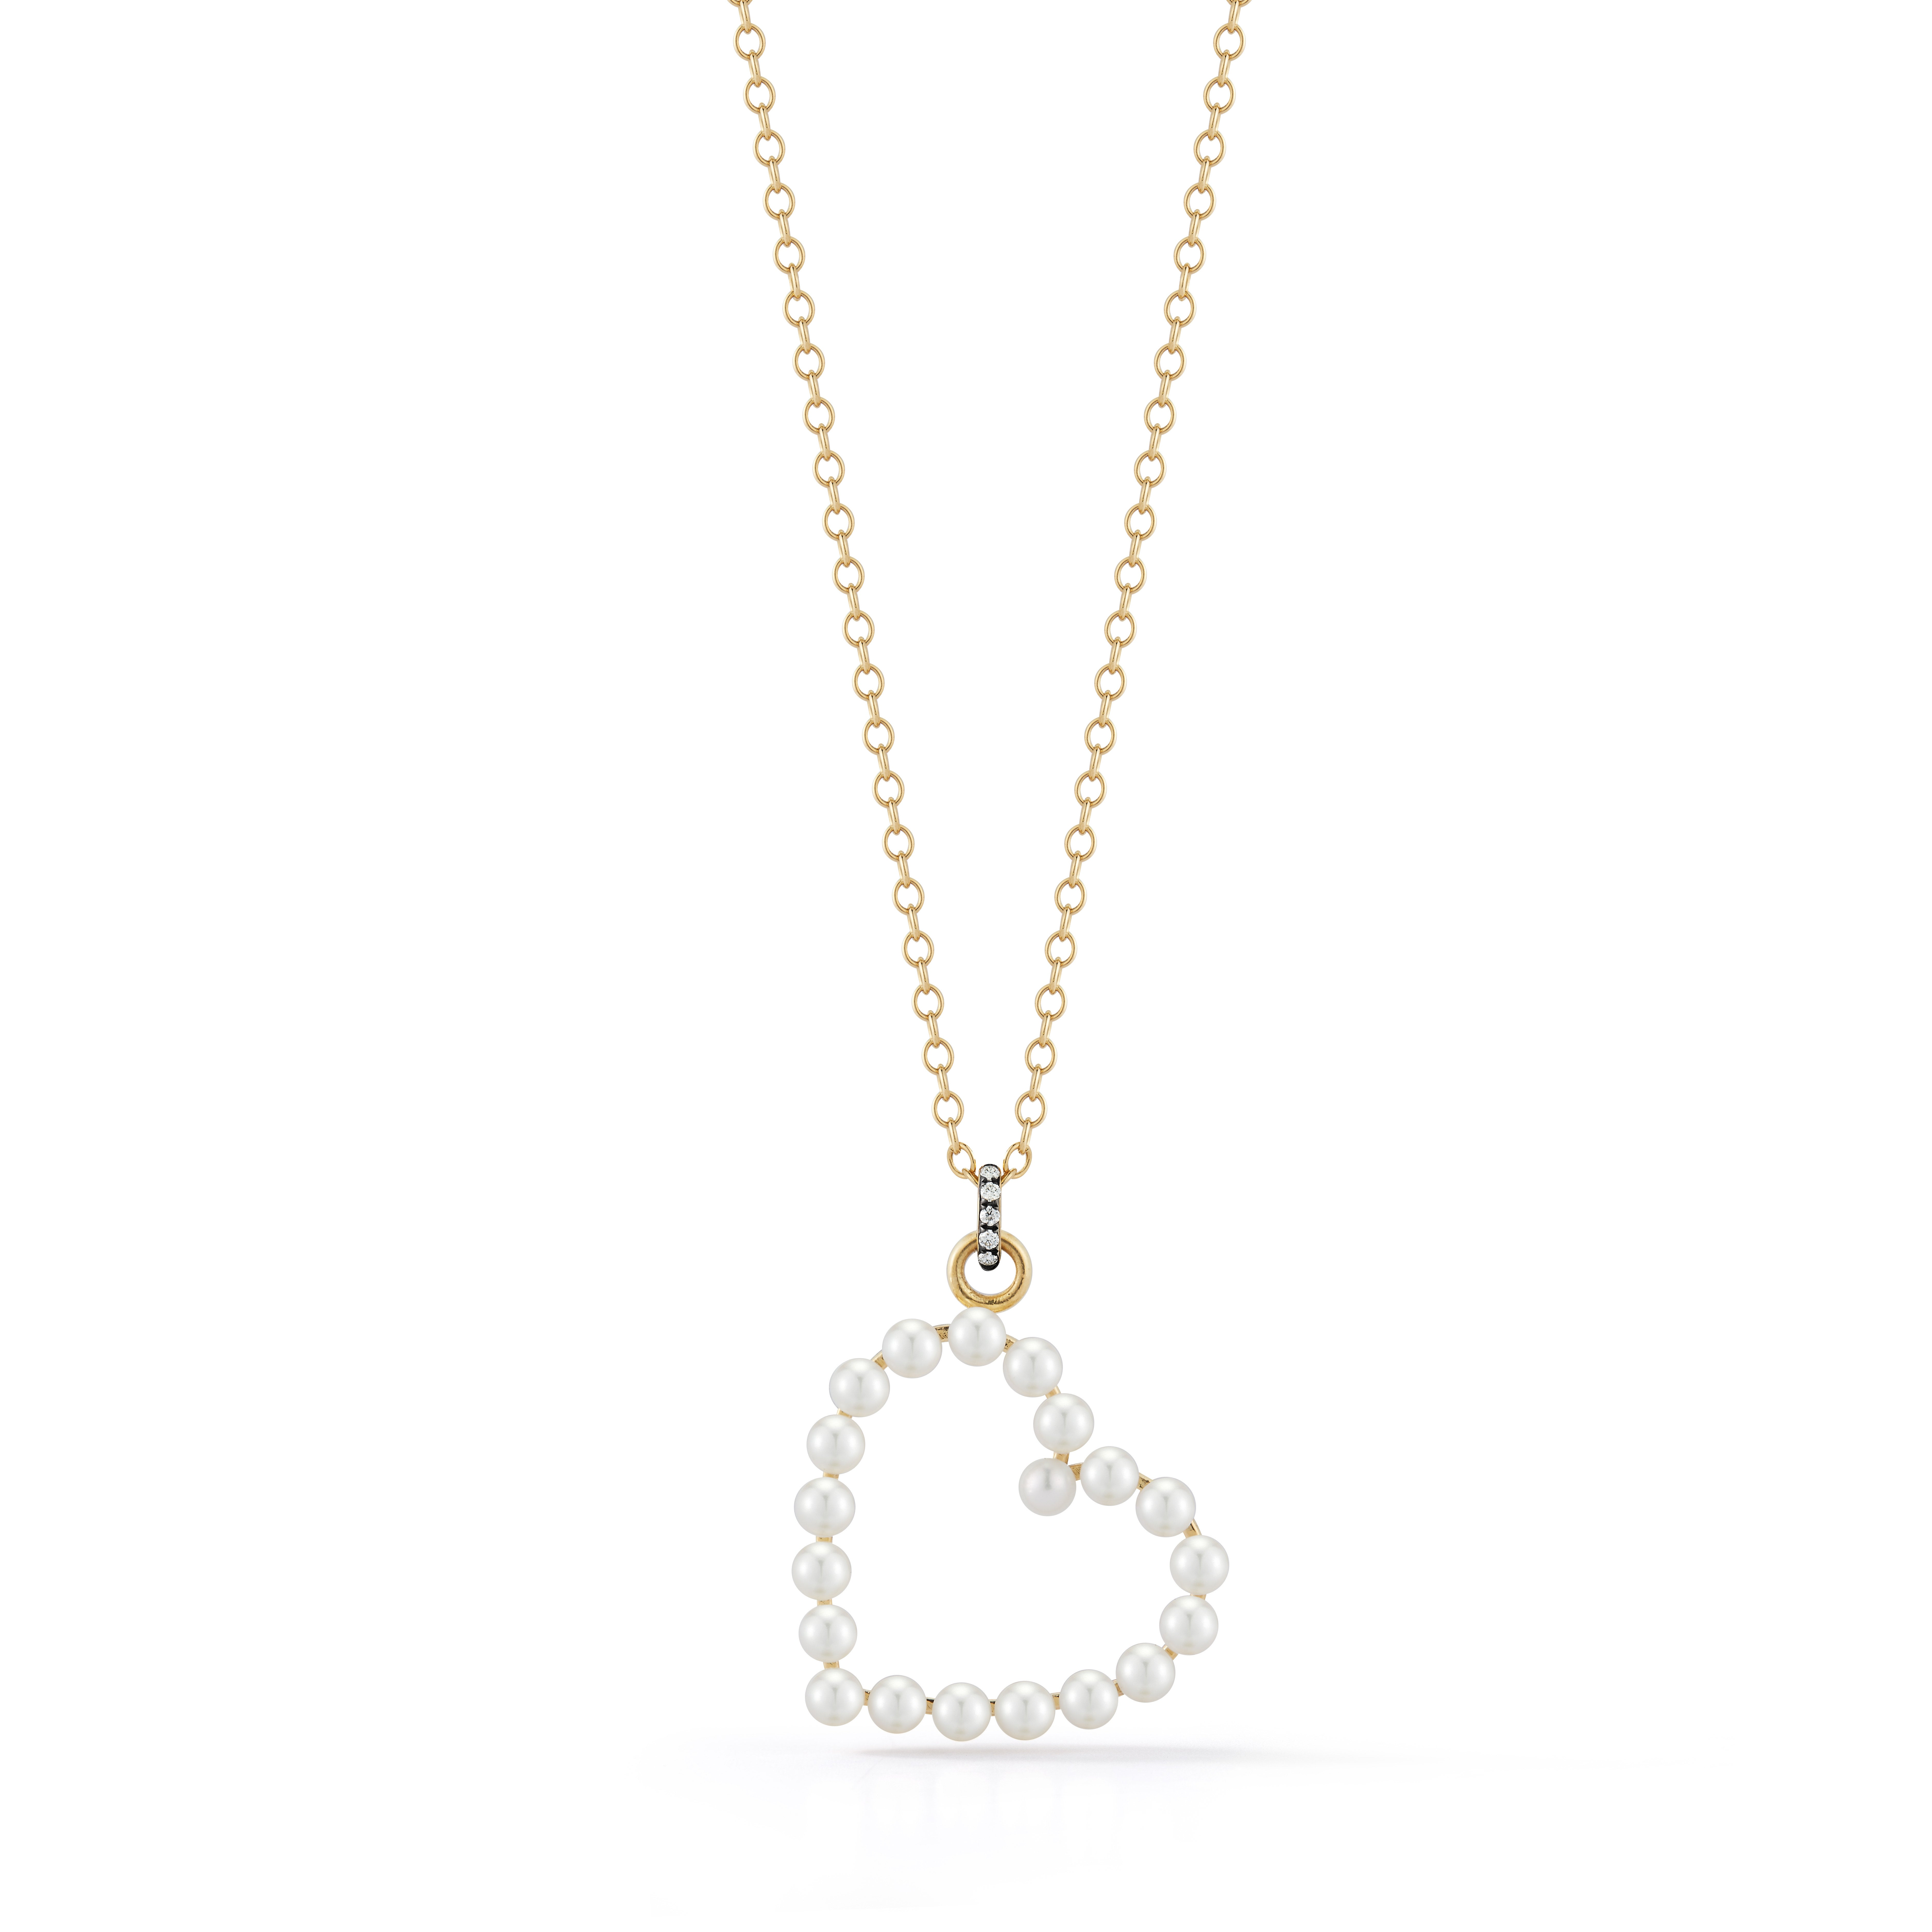 Jemma Wynne Prive Pearl Heart Necklace